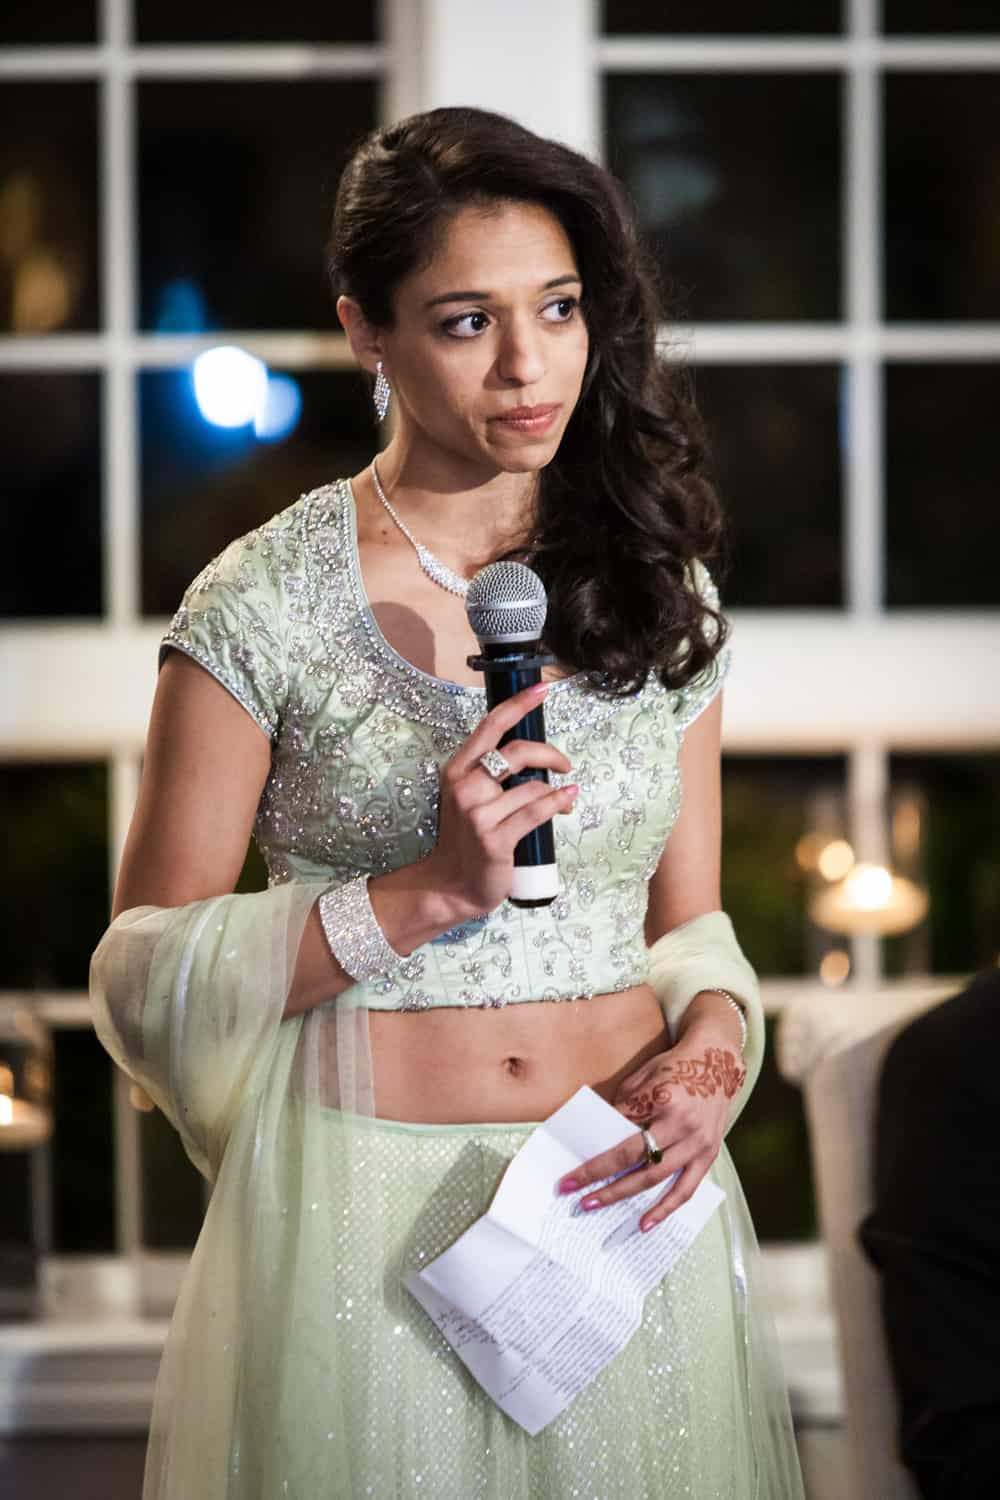 Maid of honor making speech in Indian traditional sari at an East Wind Inn wedding reception